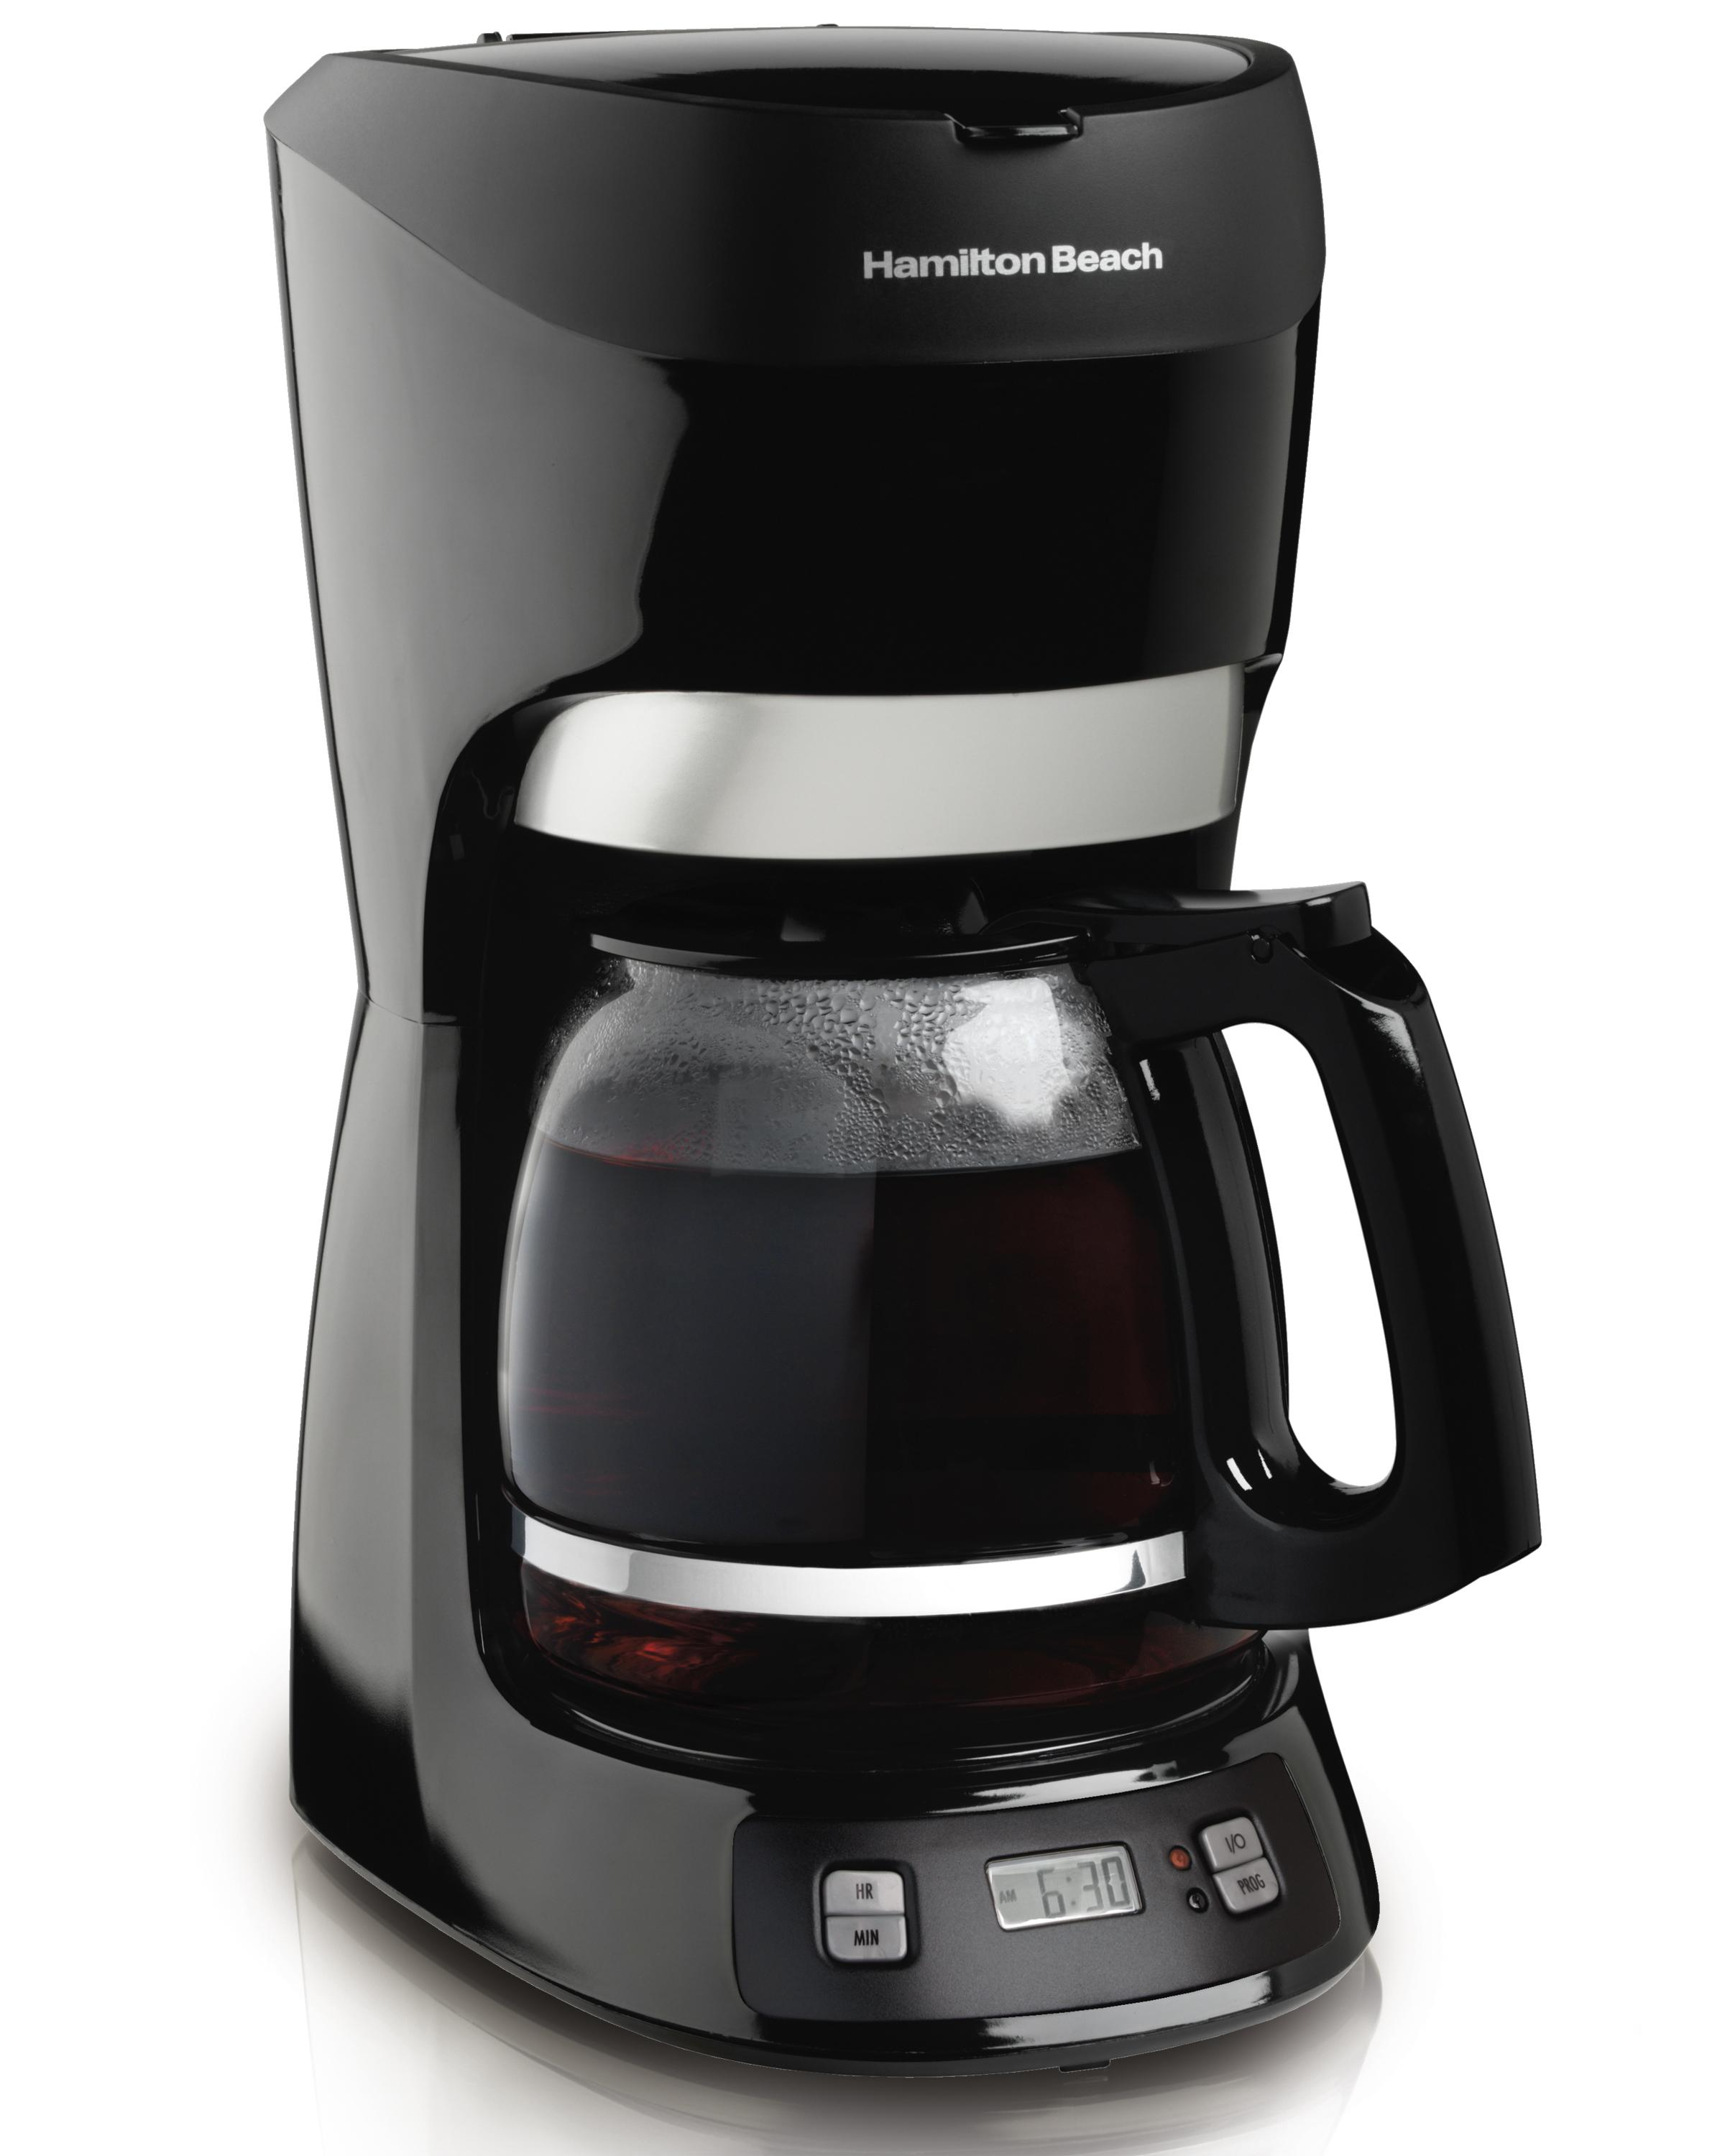 Coffee Maker Coffee Recipe : Amazon.com: Hamilton Beach 12-Cup Coffee Maker with Digital Clock (49467): Coffee Makers For ...